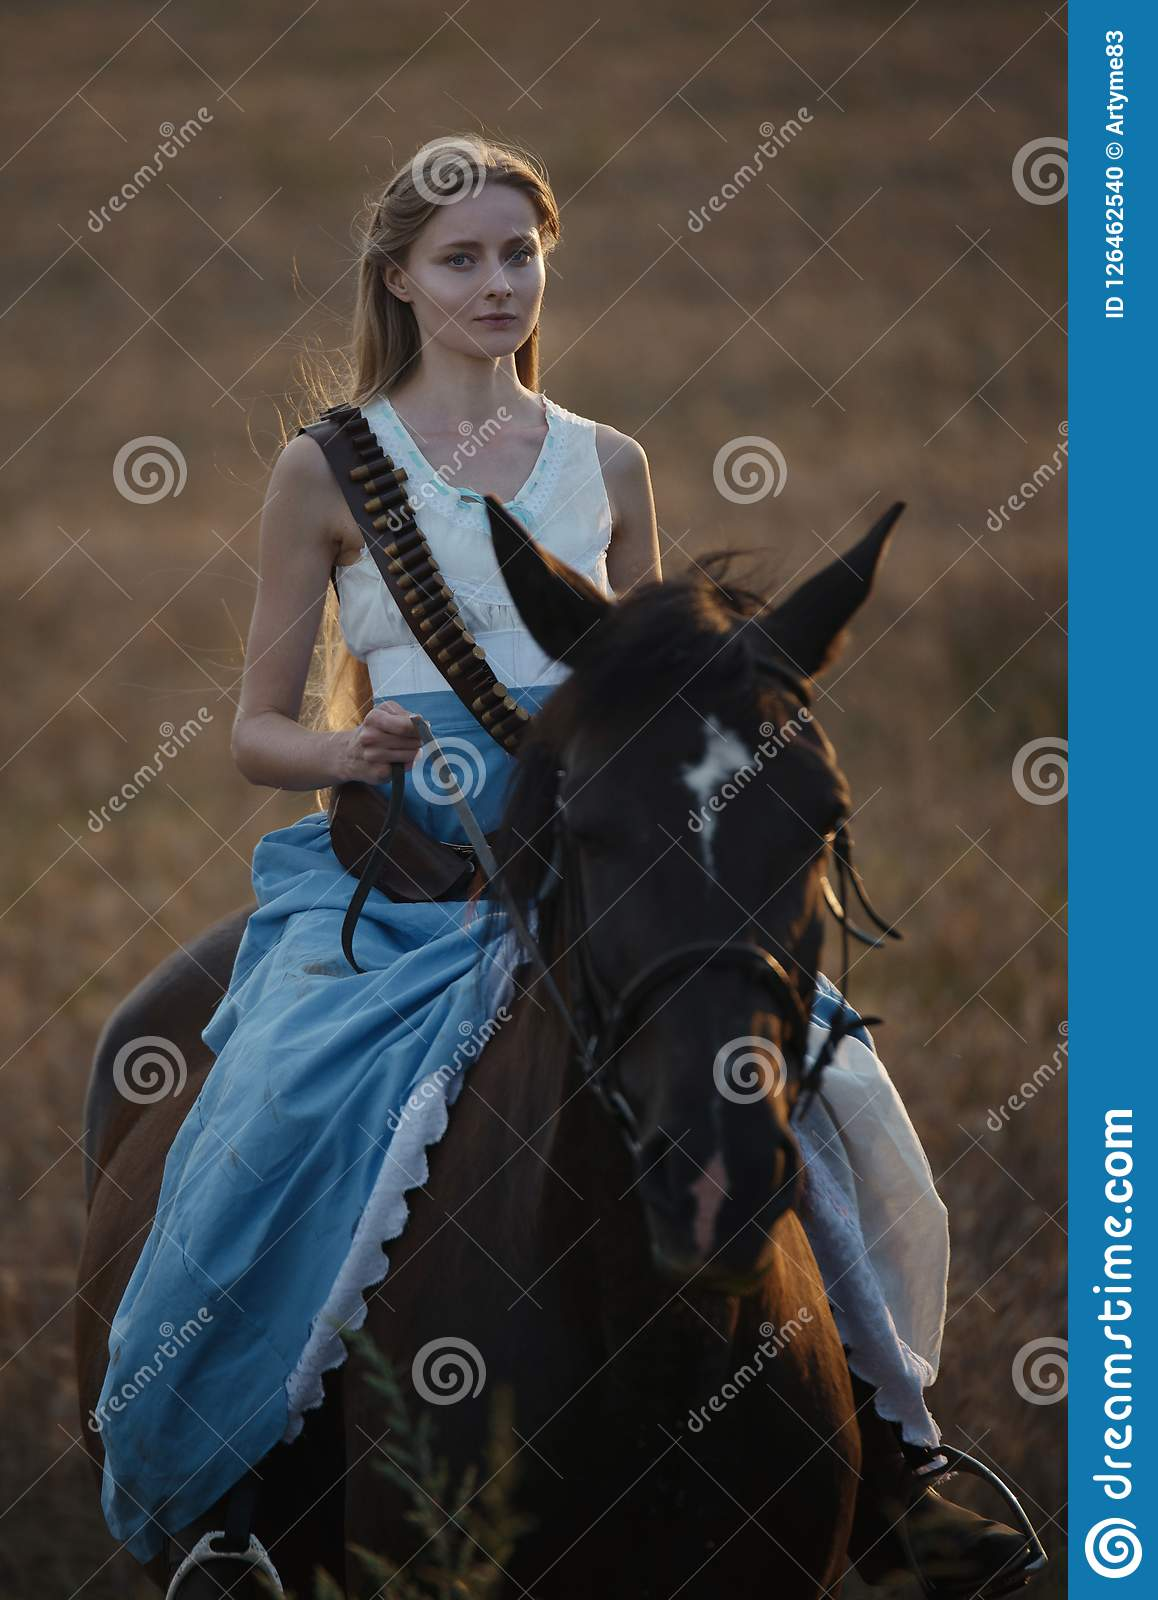 Portrait Of A Beautiful Female Cowgirl With Shotgun From Wild West Riding A Horse In The Outback Stock Photo Image Of Grass Hair 126462540